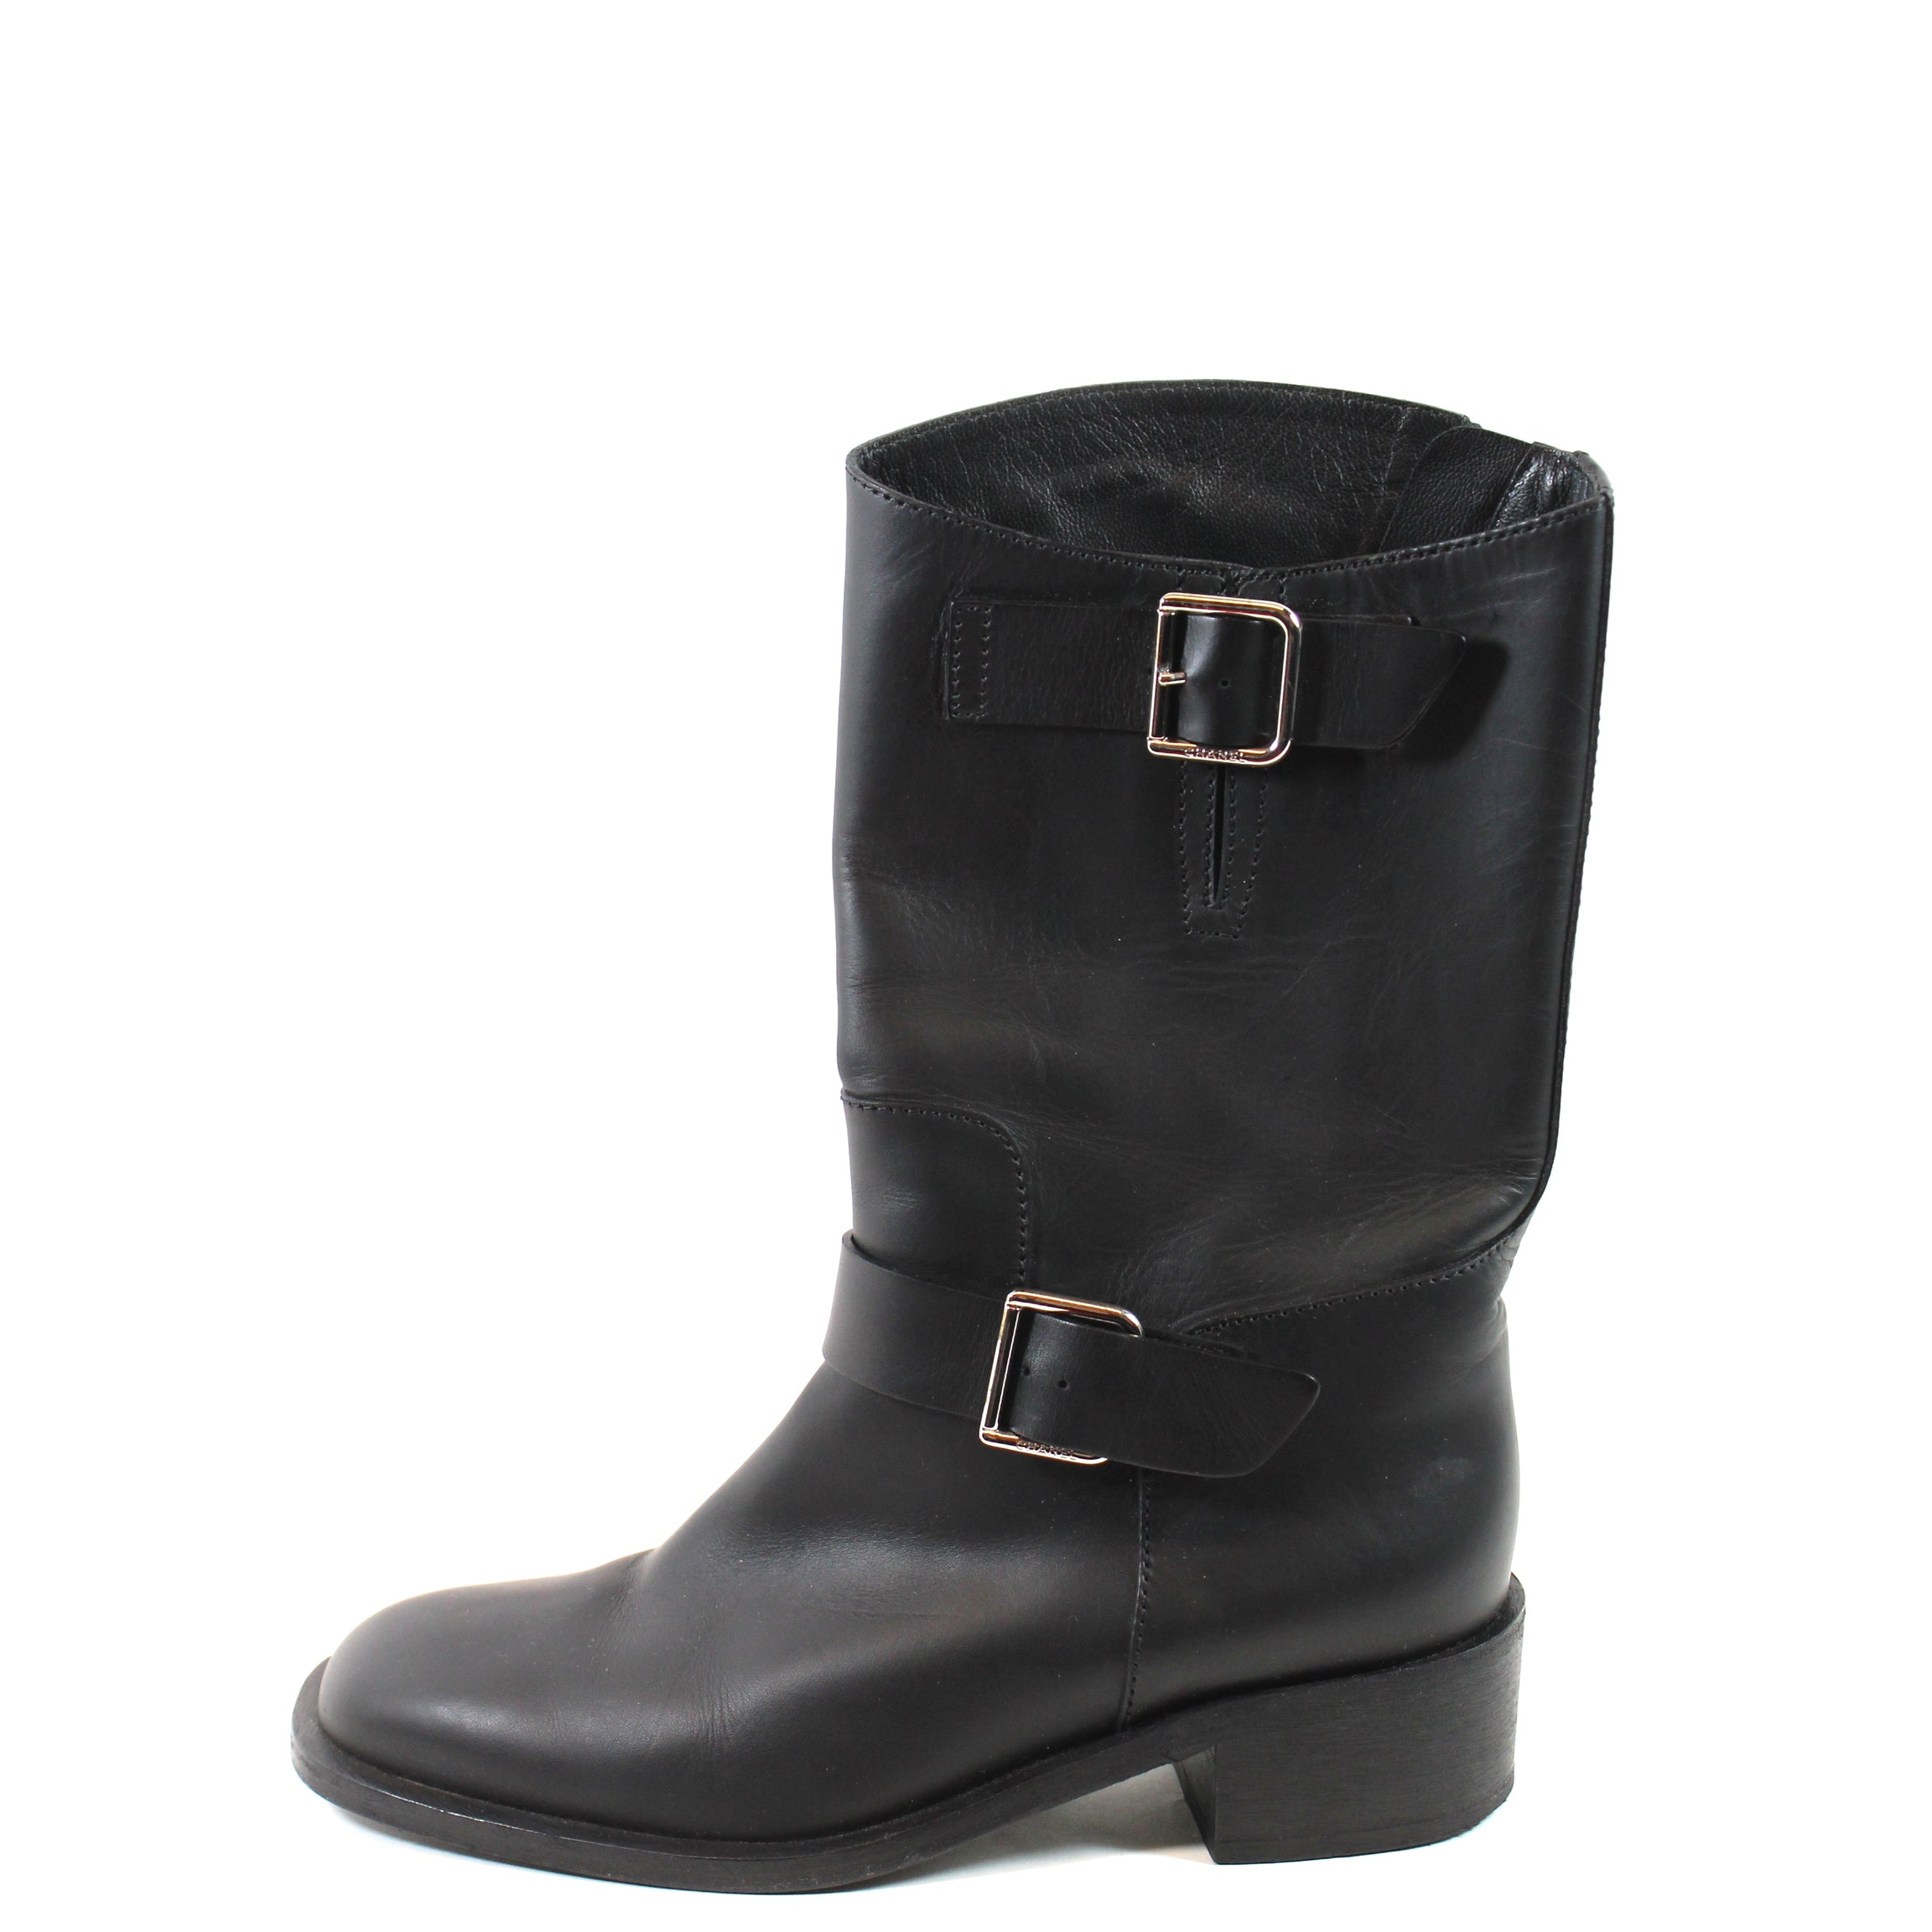 fe6d80999be9d Chanel Black Leather Buckled Boots - G27805 (Size 38.5) – Encore Consignment